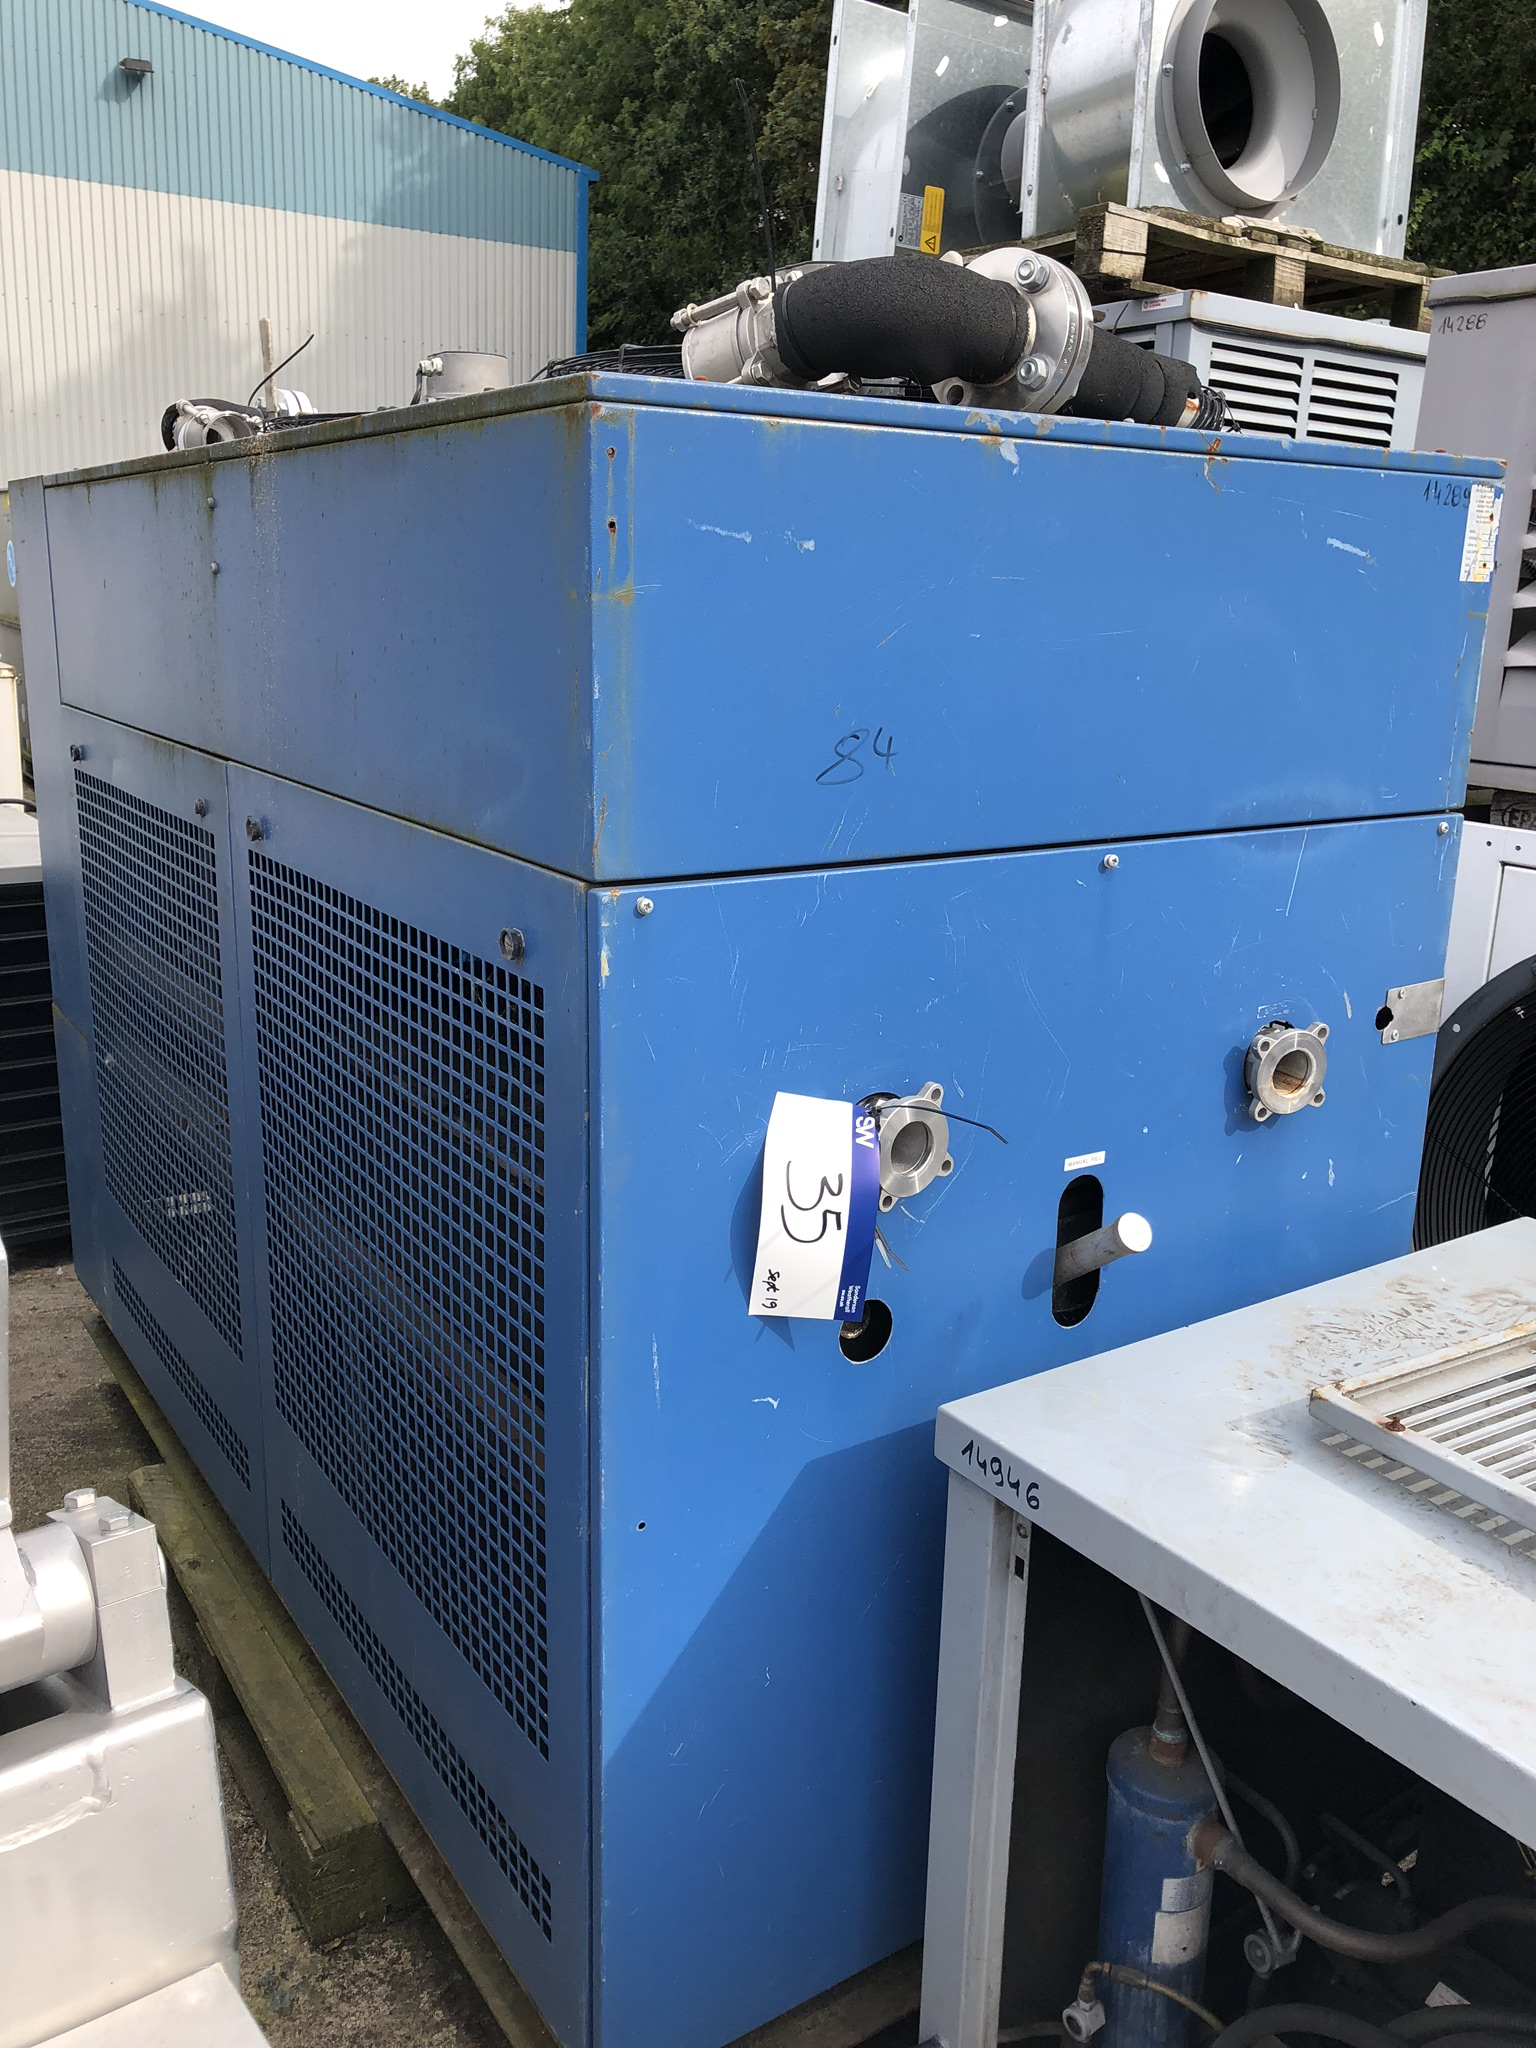 Tricool 99 S2/80 DC WATER COOLER, approx. 2.3m x 1.1m x 1.8m high, lift out charge - £100